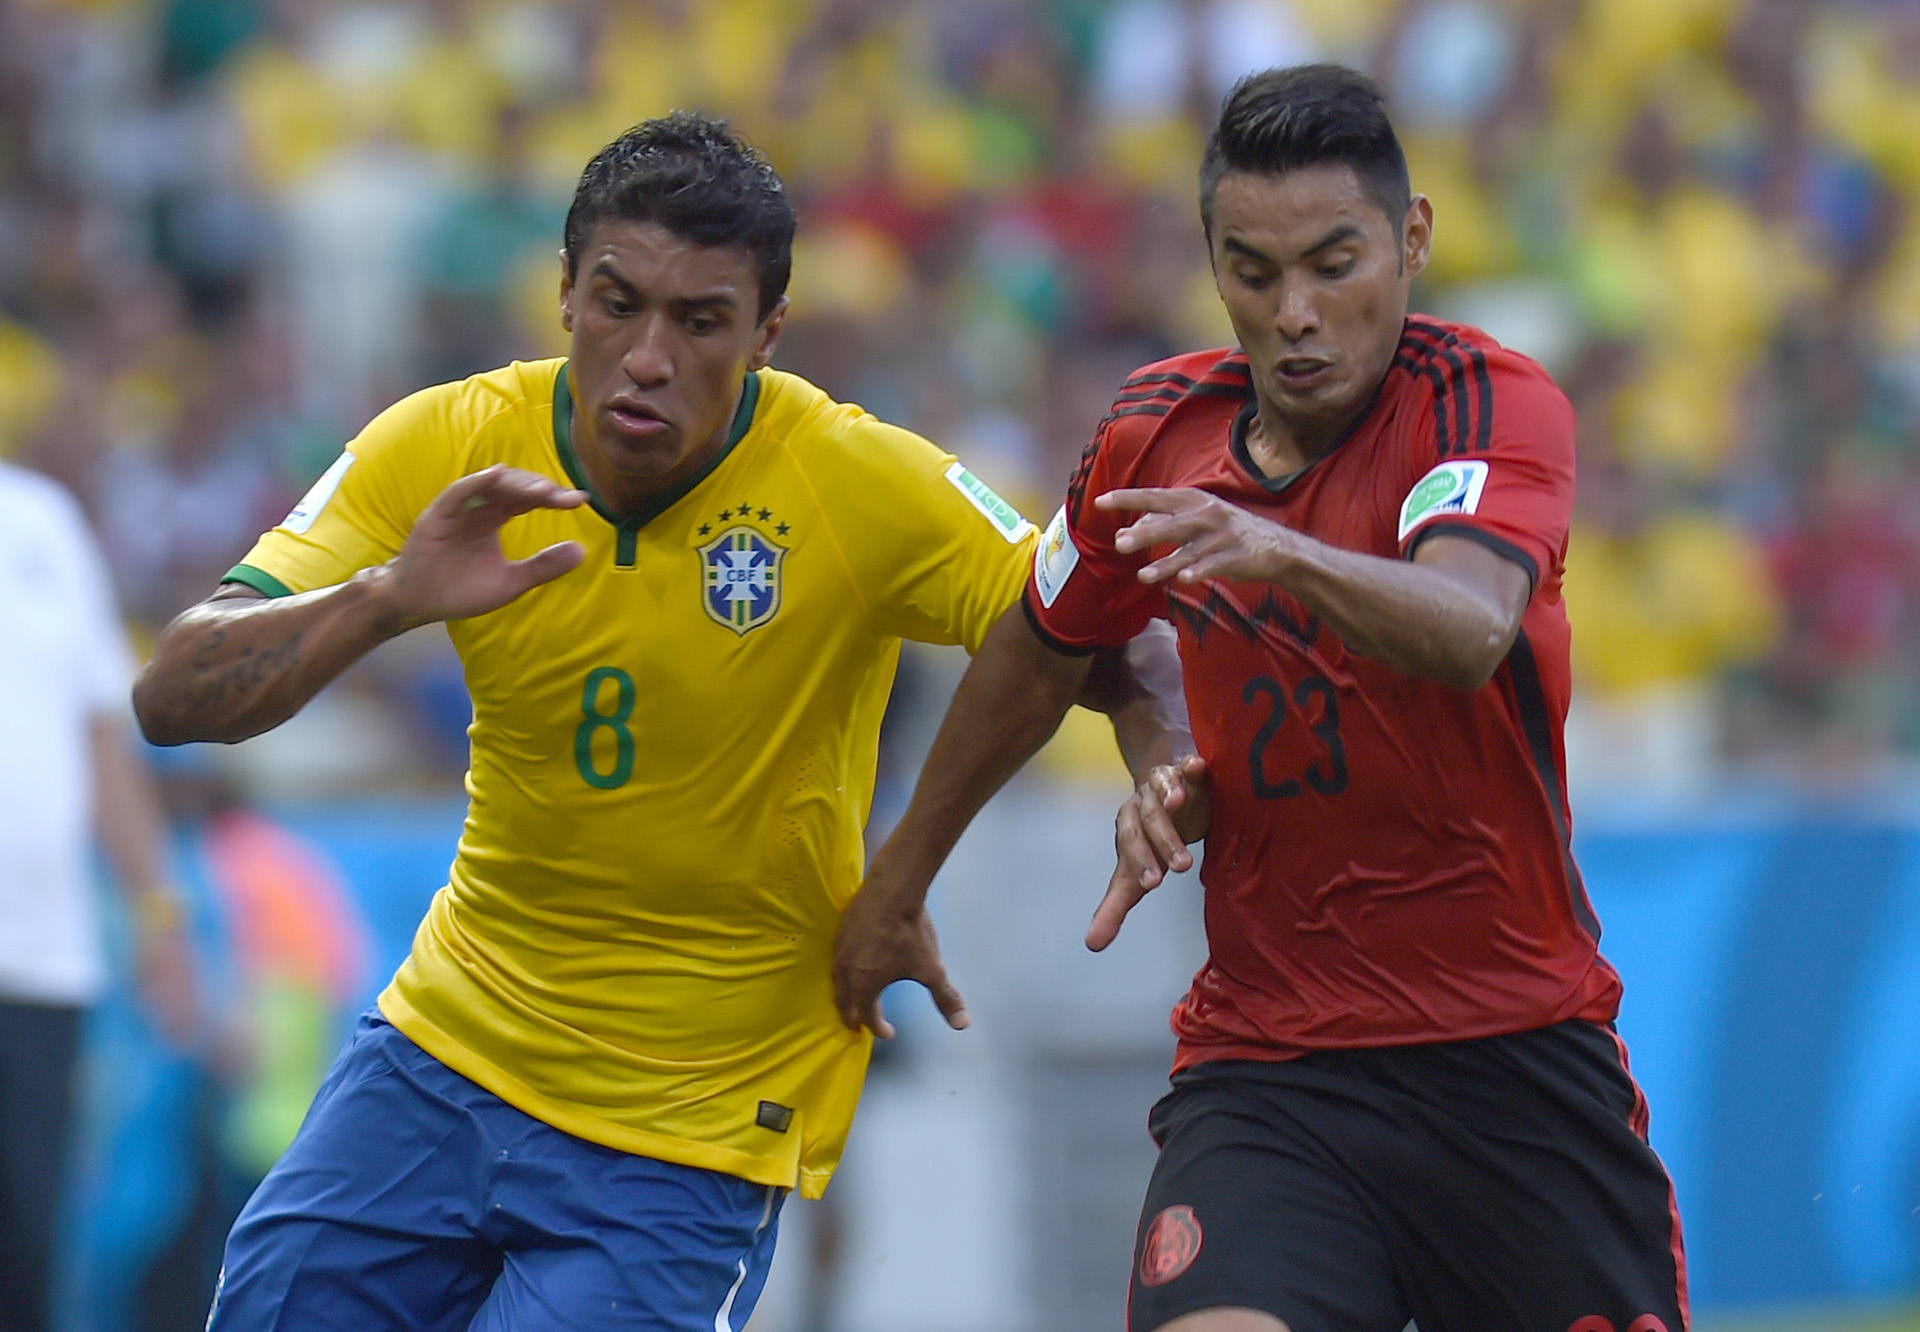 Paulinho Brazil Jose Vazquez Mexico 2014 World Cup Group A 06172014